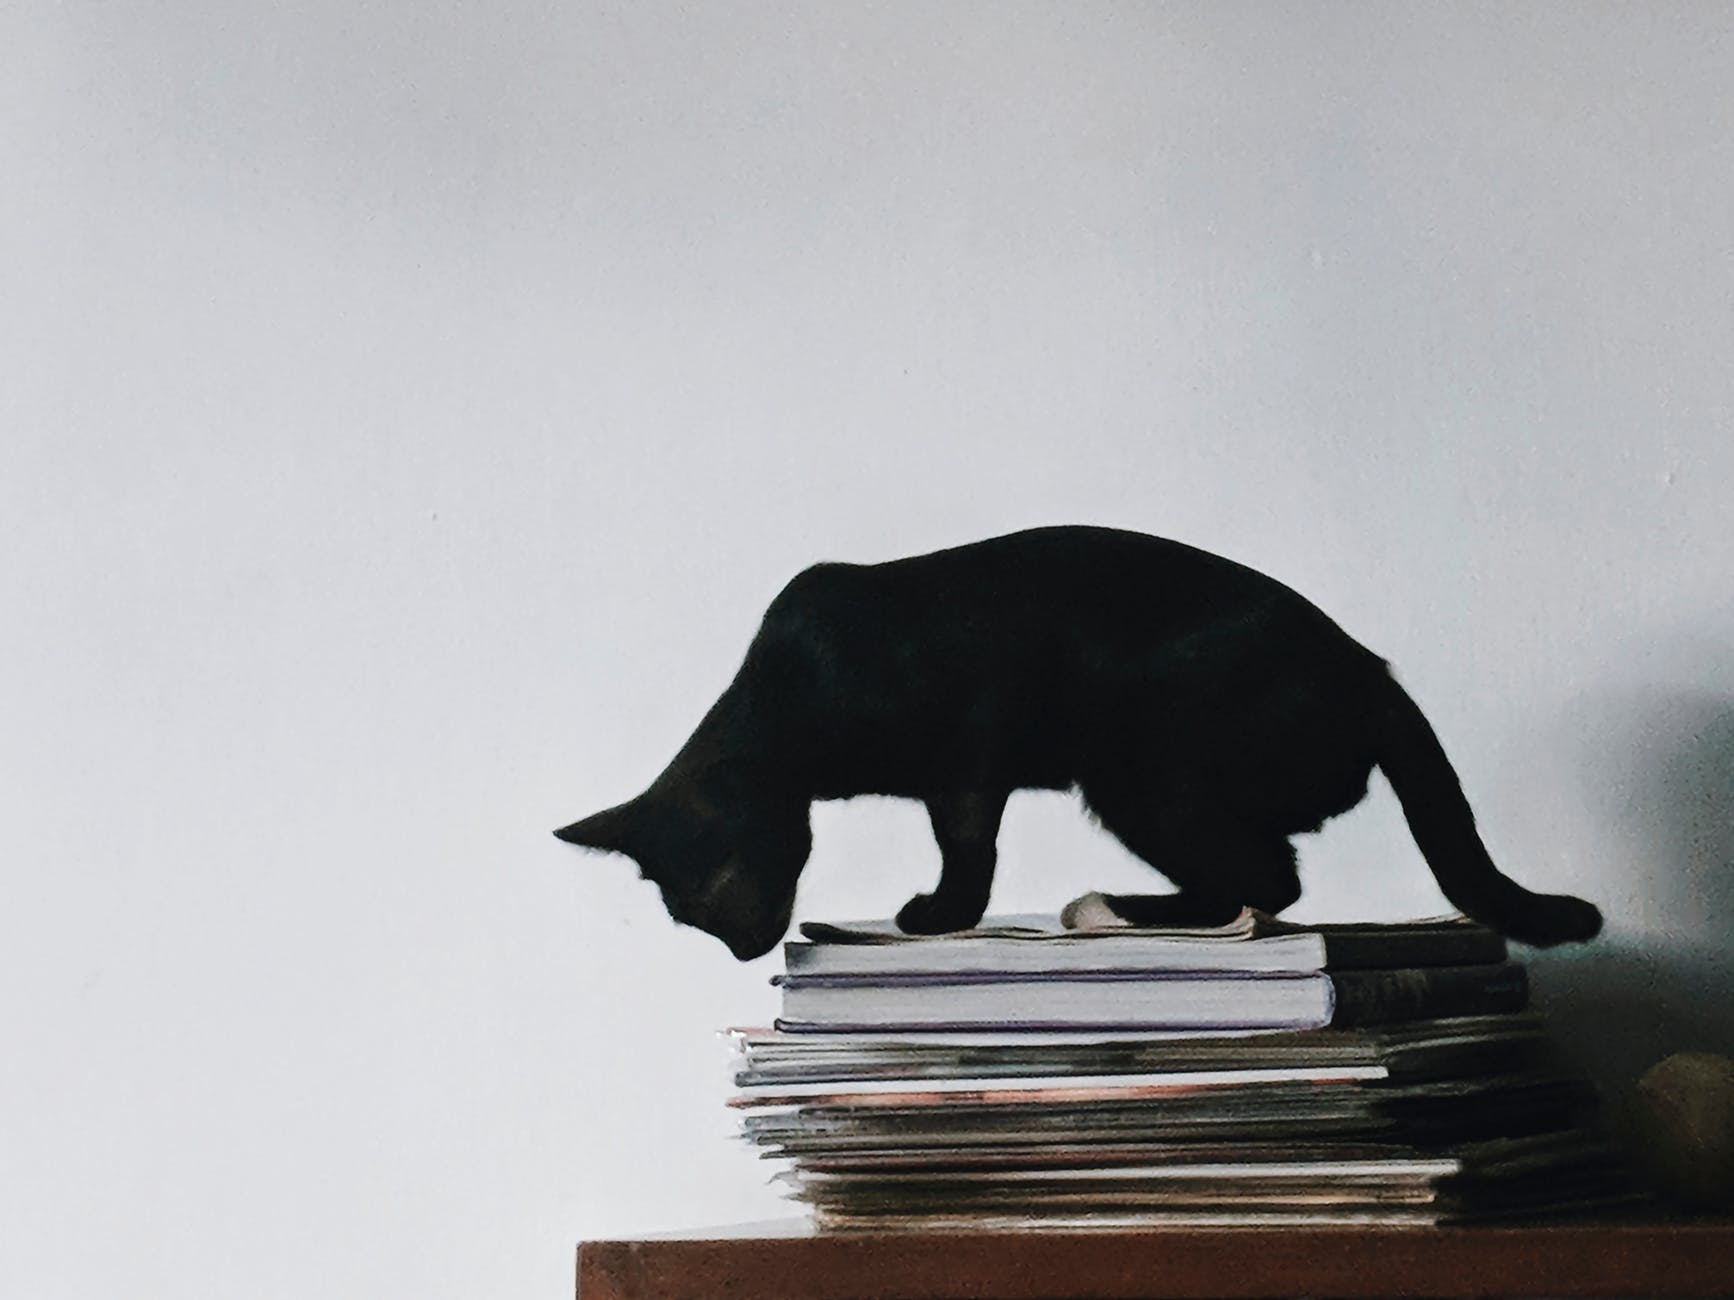 black cat on top of the magazines